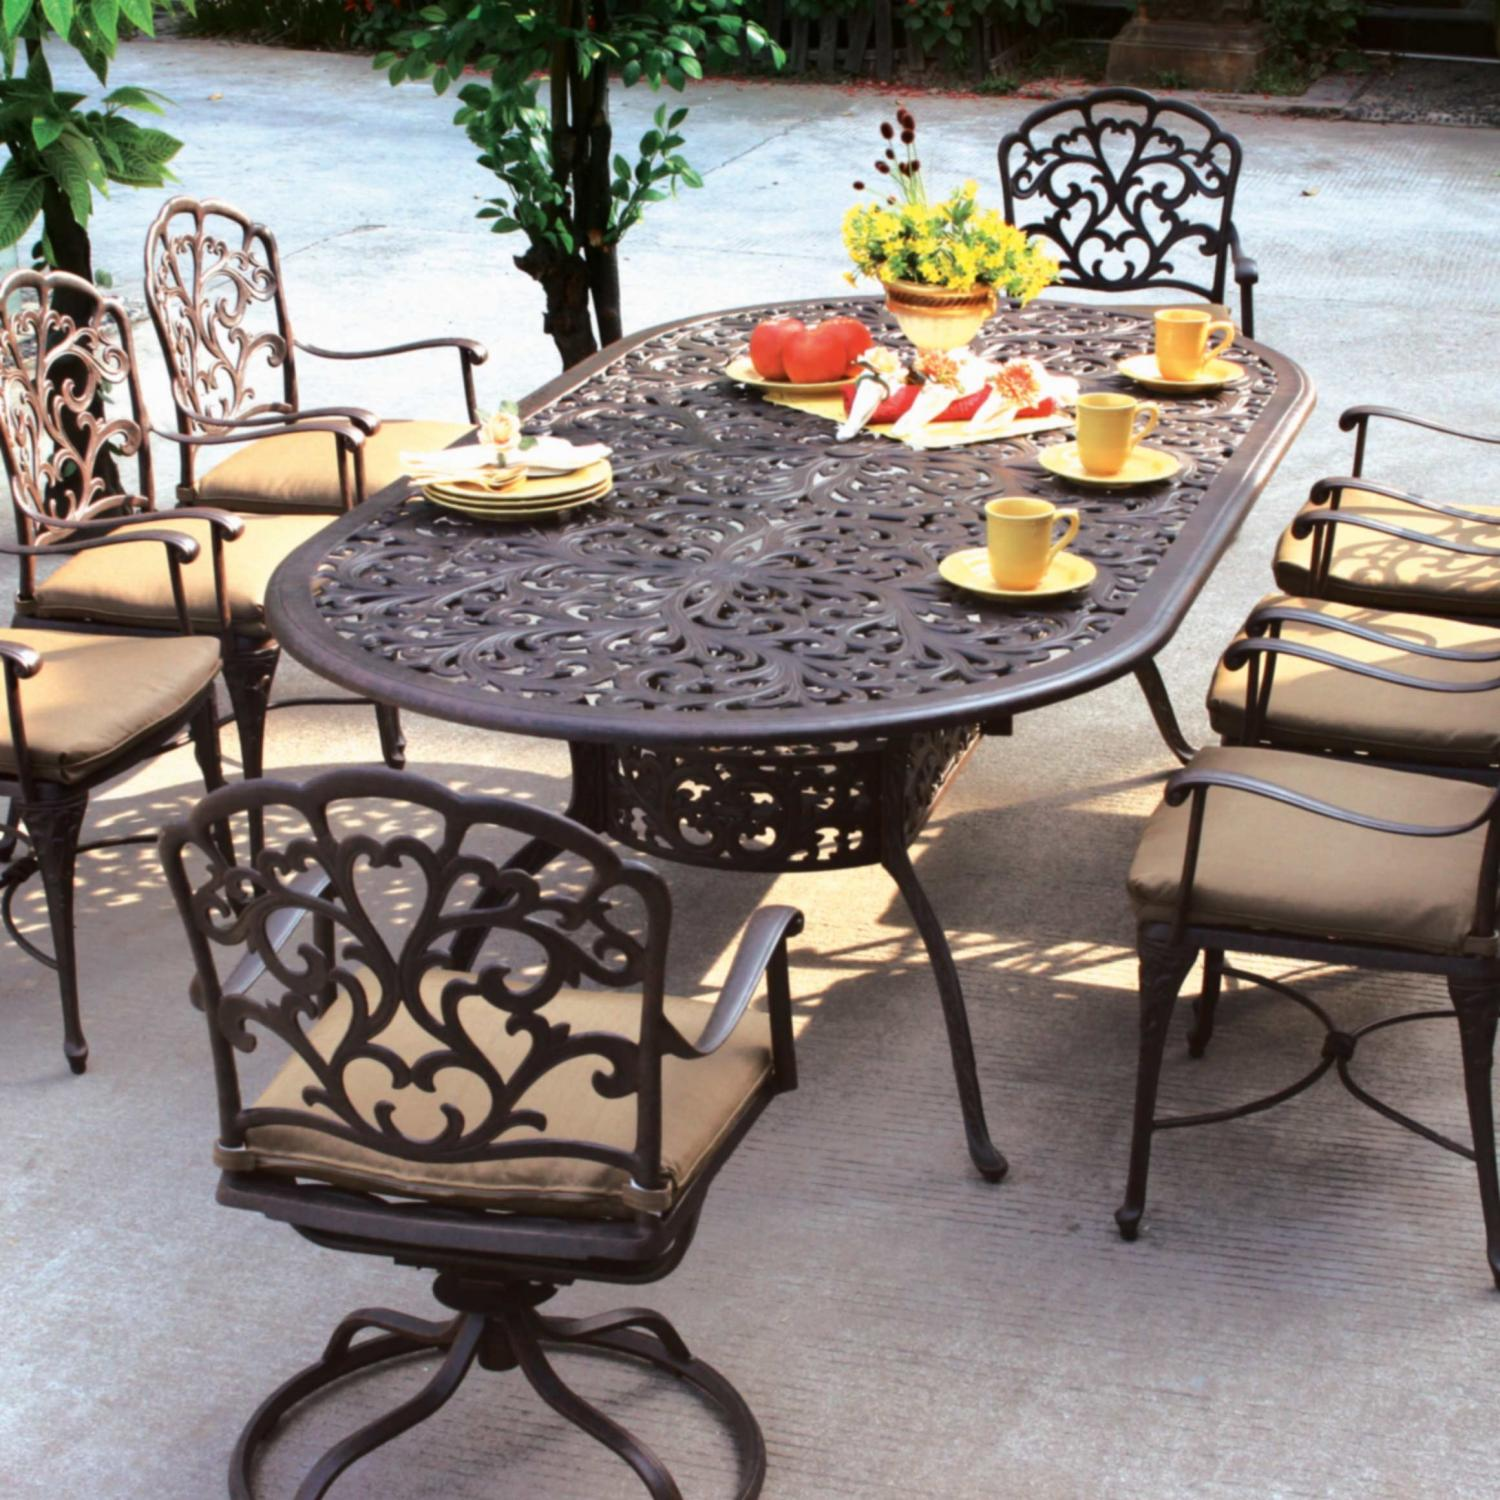 Patio Dining Furniture Surprising Helpful Ideas To Purchase The Best Furniture Dining Room